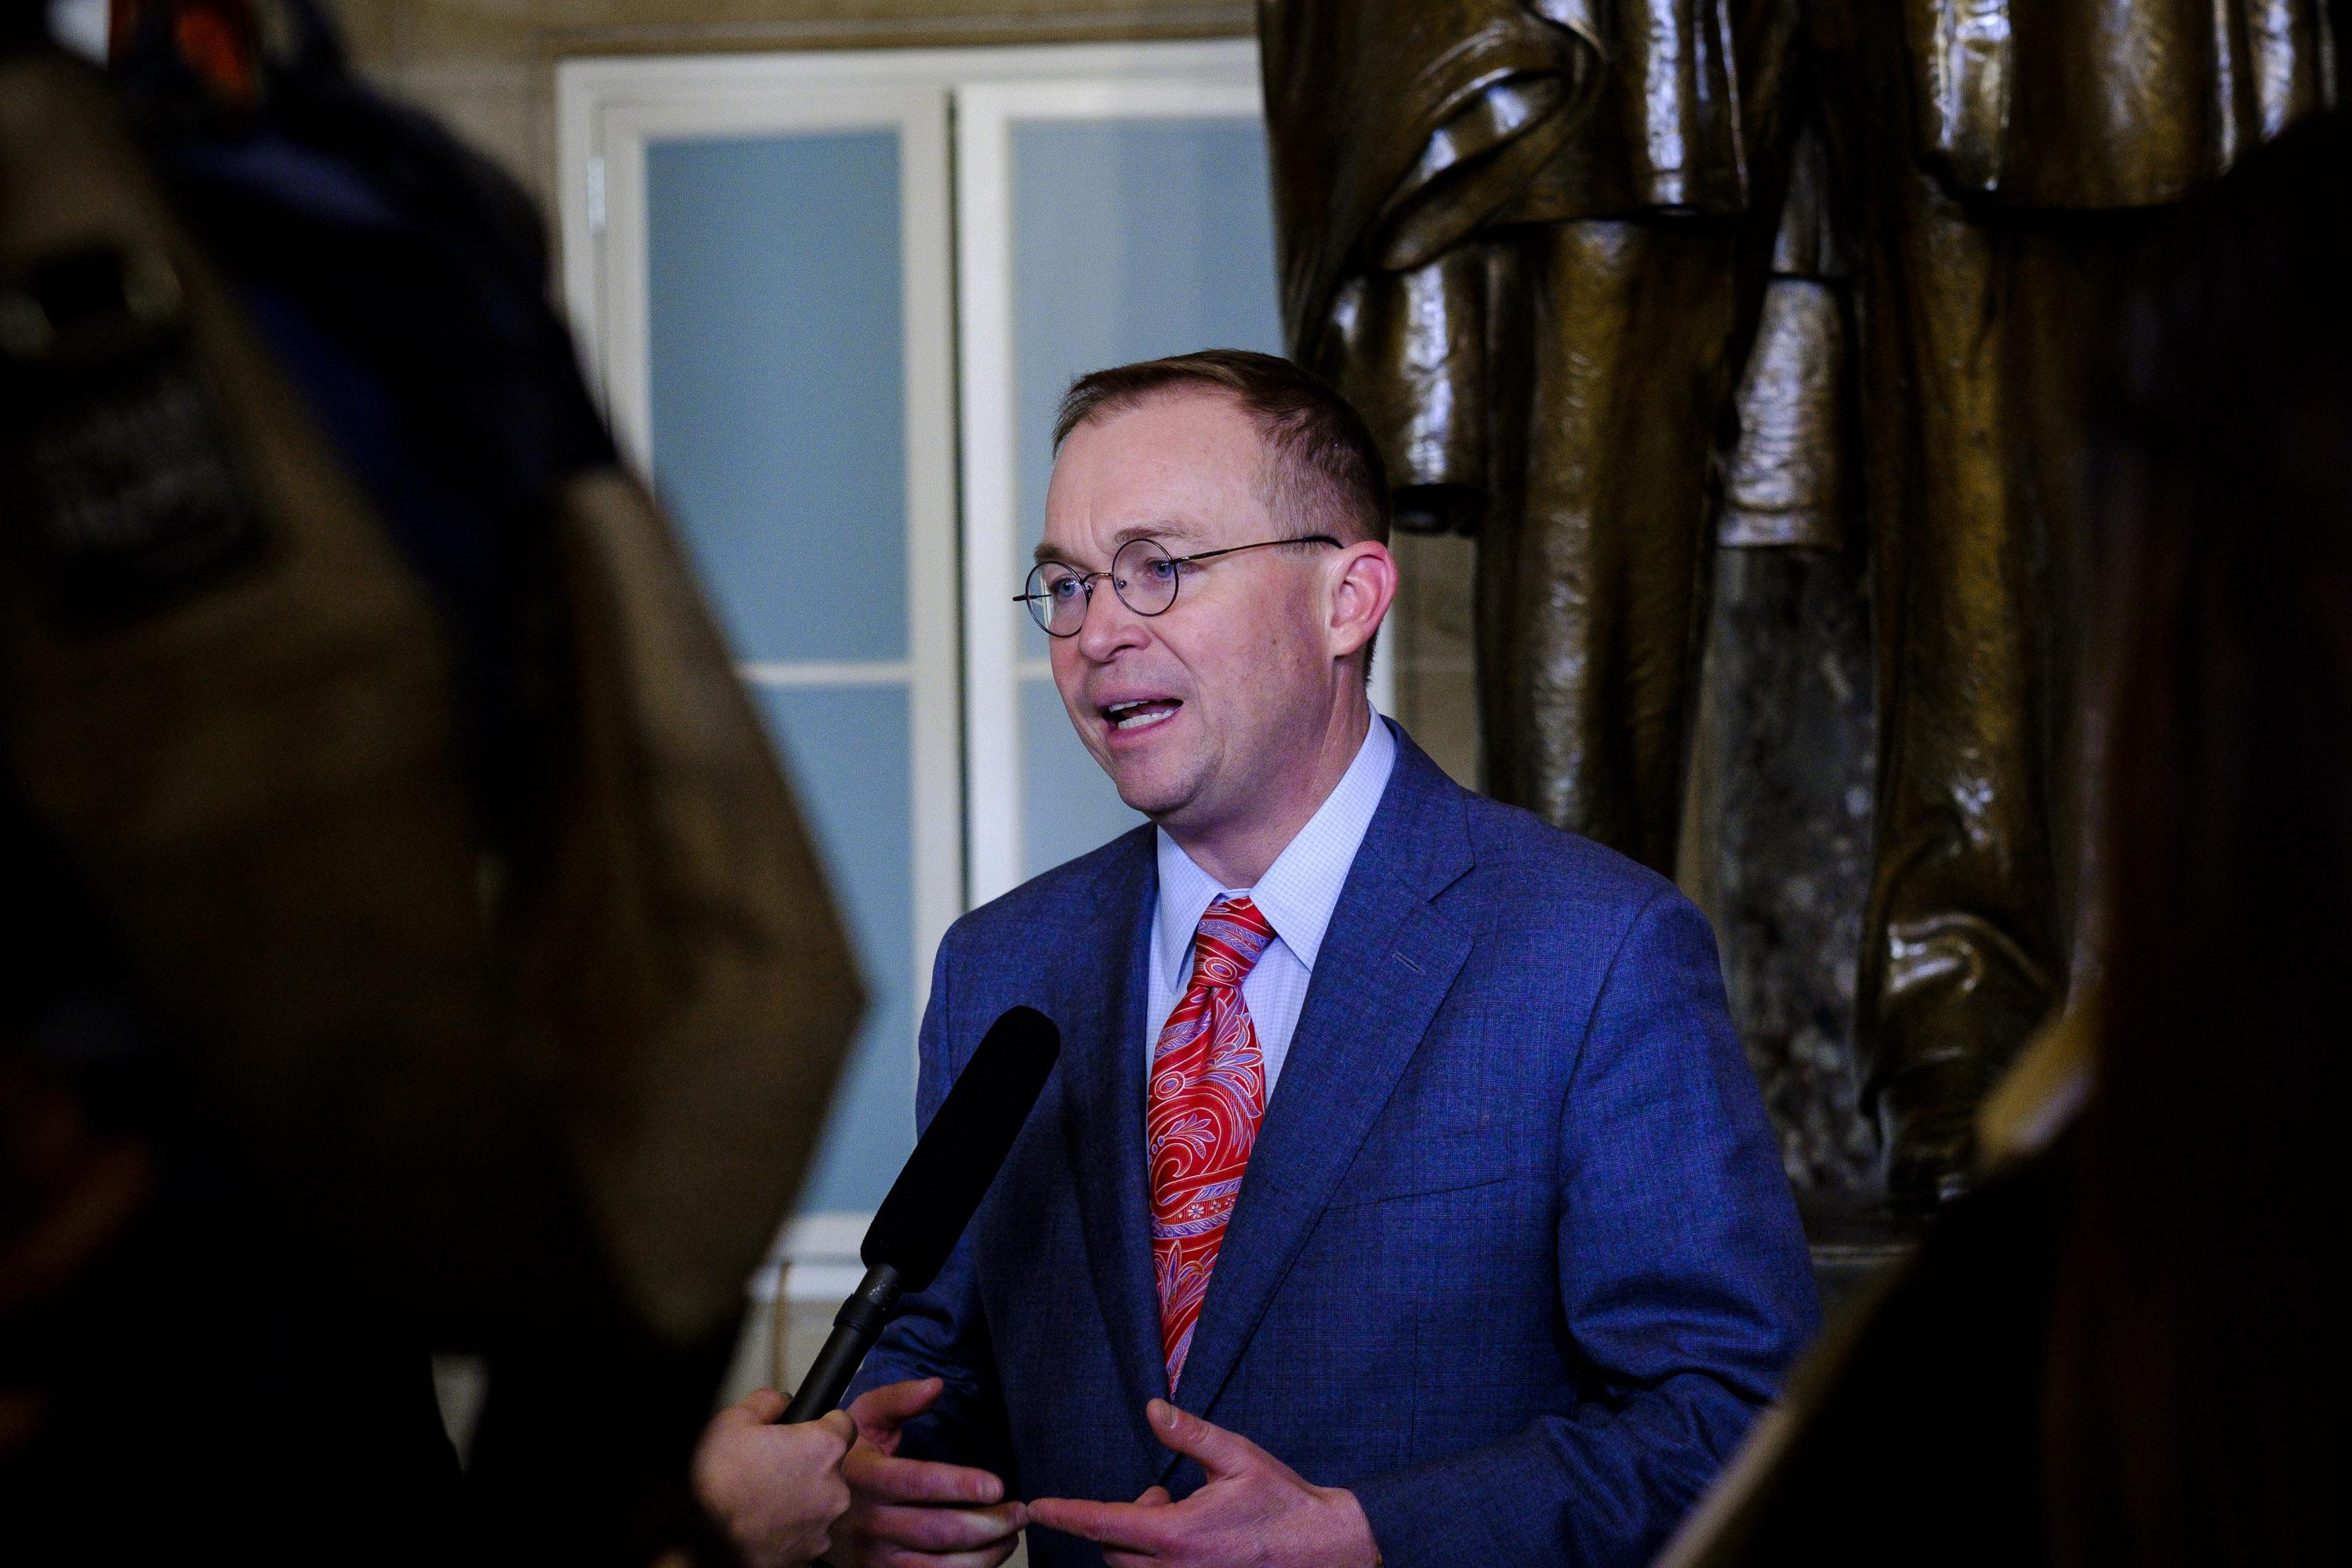 WASHINGTON, DC - JANUARY 30:  President Trump's Budget Director, Mick Mulvaney, is interviewed in Statuary Hall at the US Capitol before President Donald Trump's first State of the Union Address before a joint session of Congress on January 30, 2018 in Washington, DC.  (Photo by Pete Marovich/Getty Images)